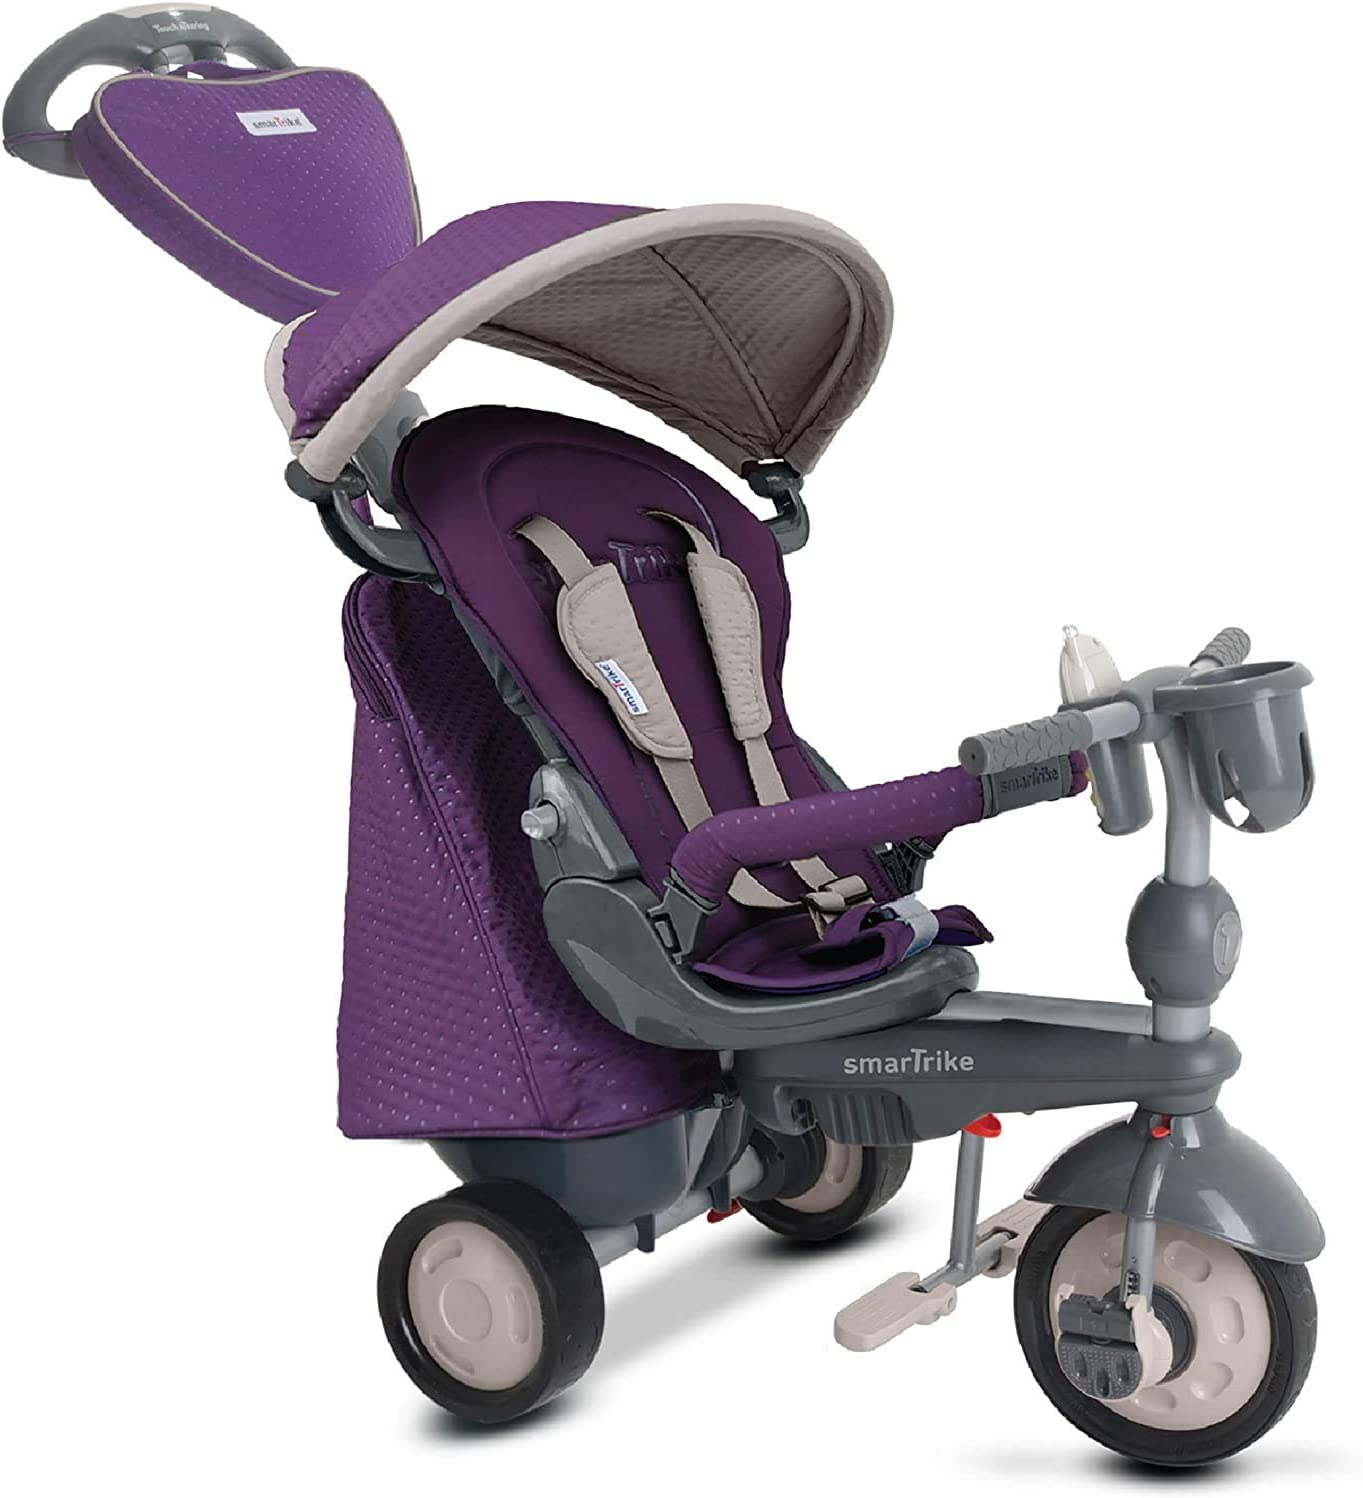 smarTrike Infinity shopping Trike Baby Tricycle Old High order for Purple Year 1